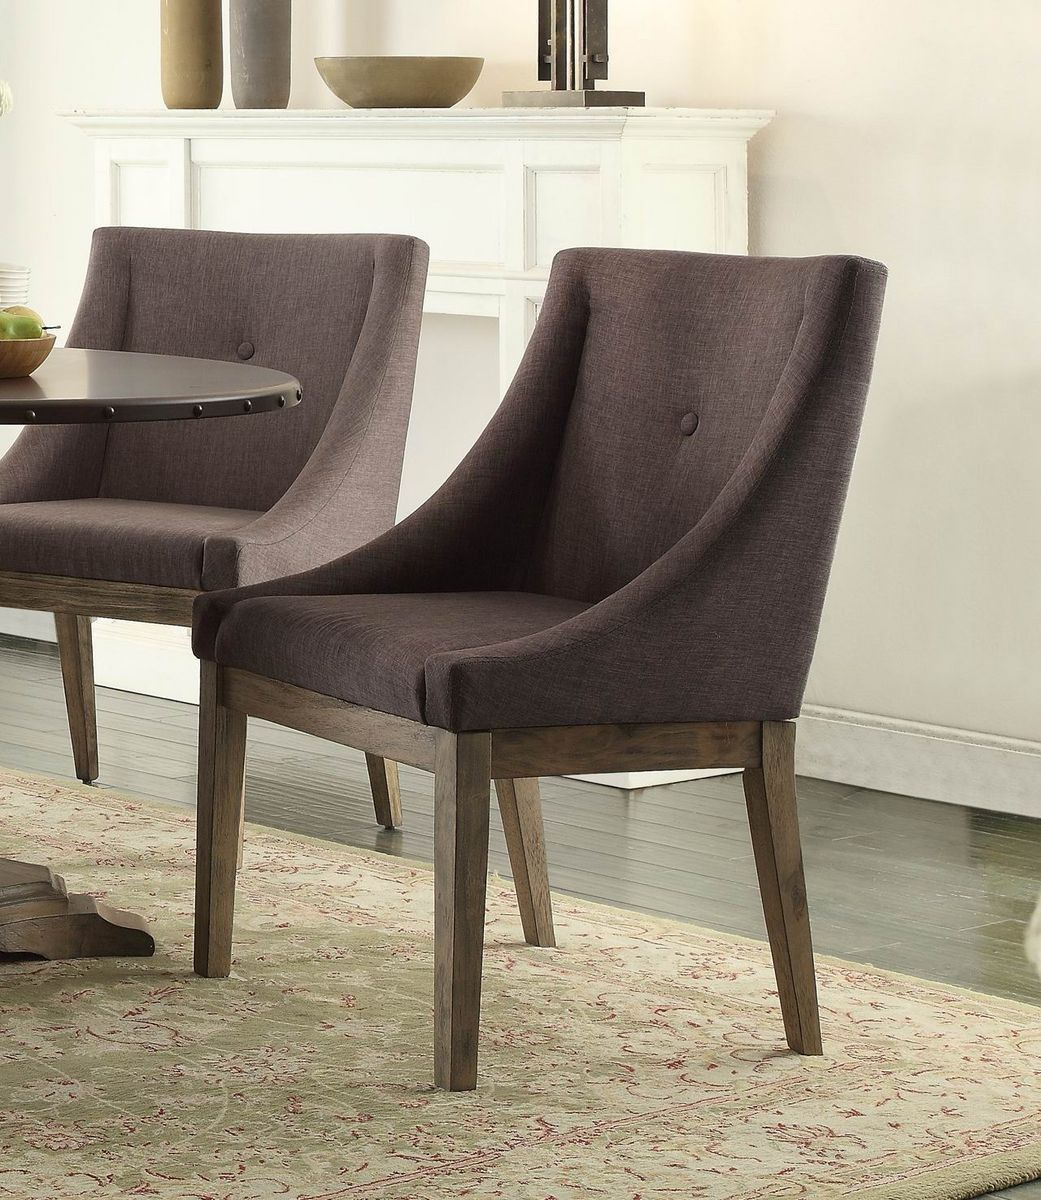 Anna Claire Collection Curved Arm Chair 5428S3 Creating a